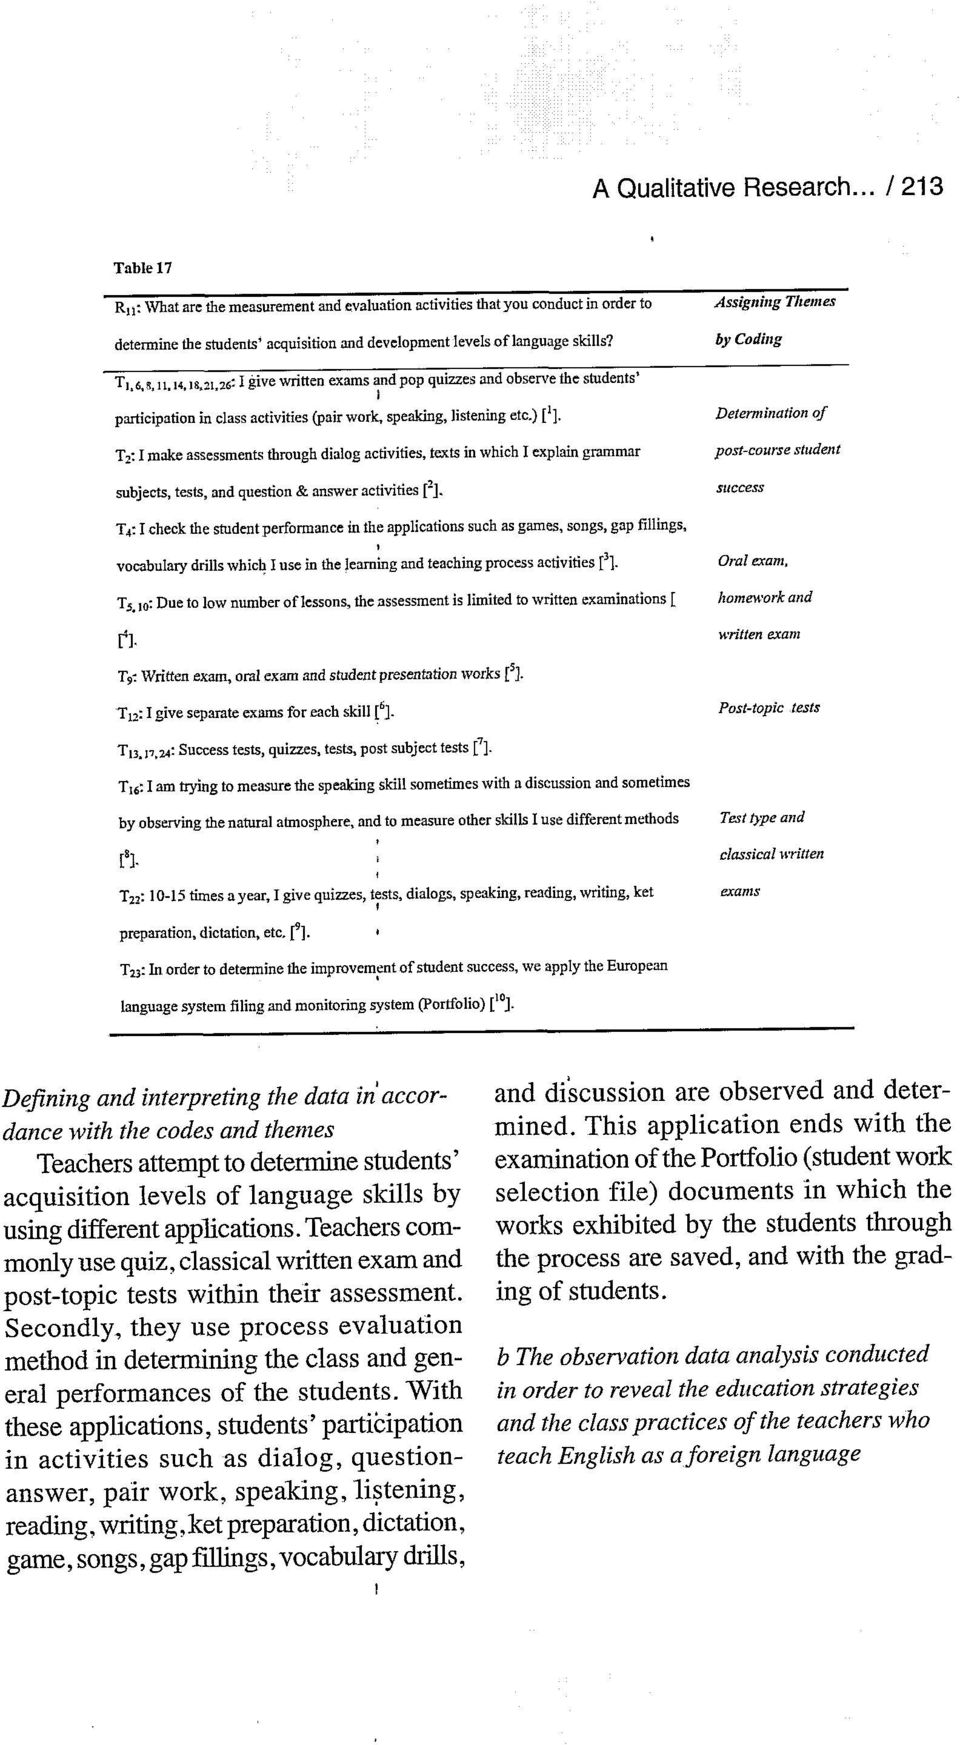 Assigning Th,emes by Coding T5,6,,11.14, 18,21.26: I give written exams and pop quizzes and observe the students' participation in class activities (pair work, speaking, listening etc.) [i].